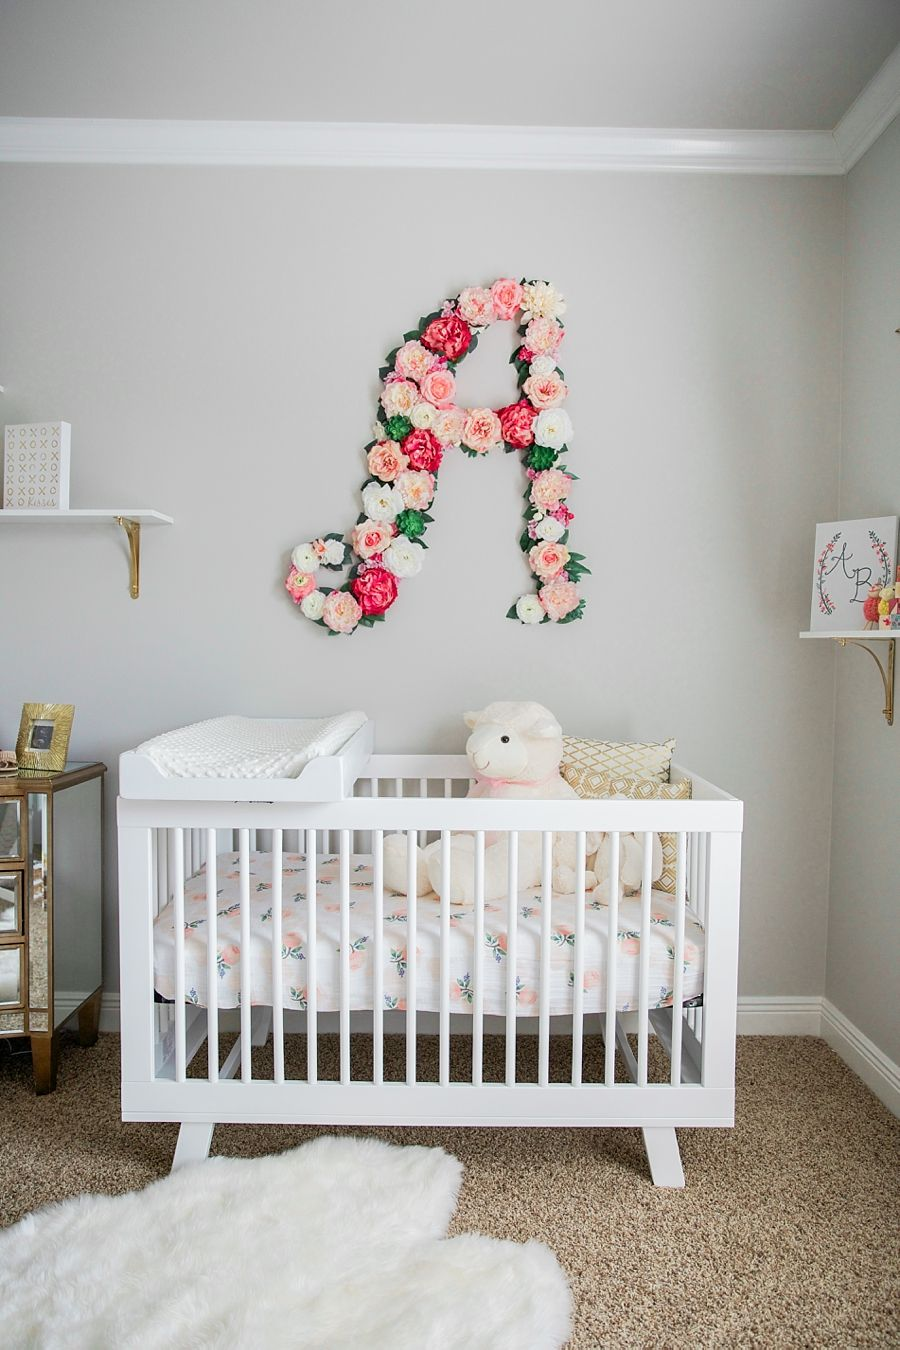 baby girl nursery decor Baby girl nursery with floral wall | Shop. Rent. Consign  baby girl nursery decor